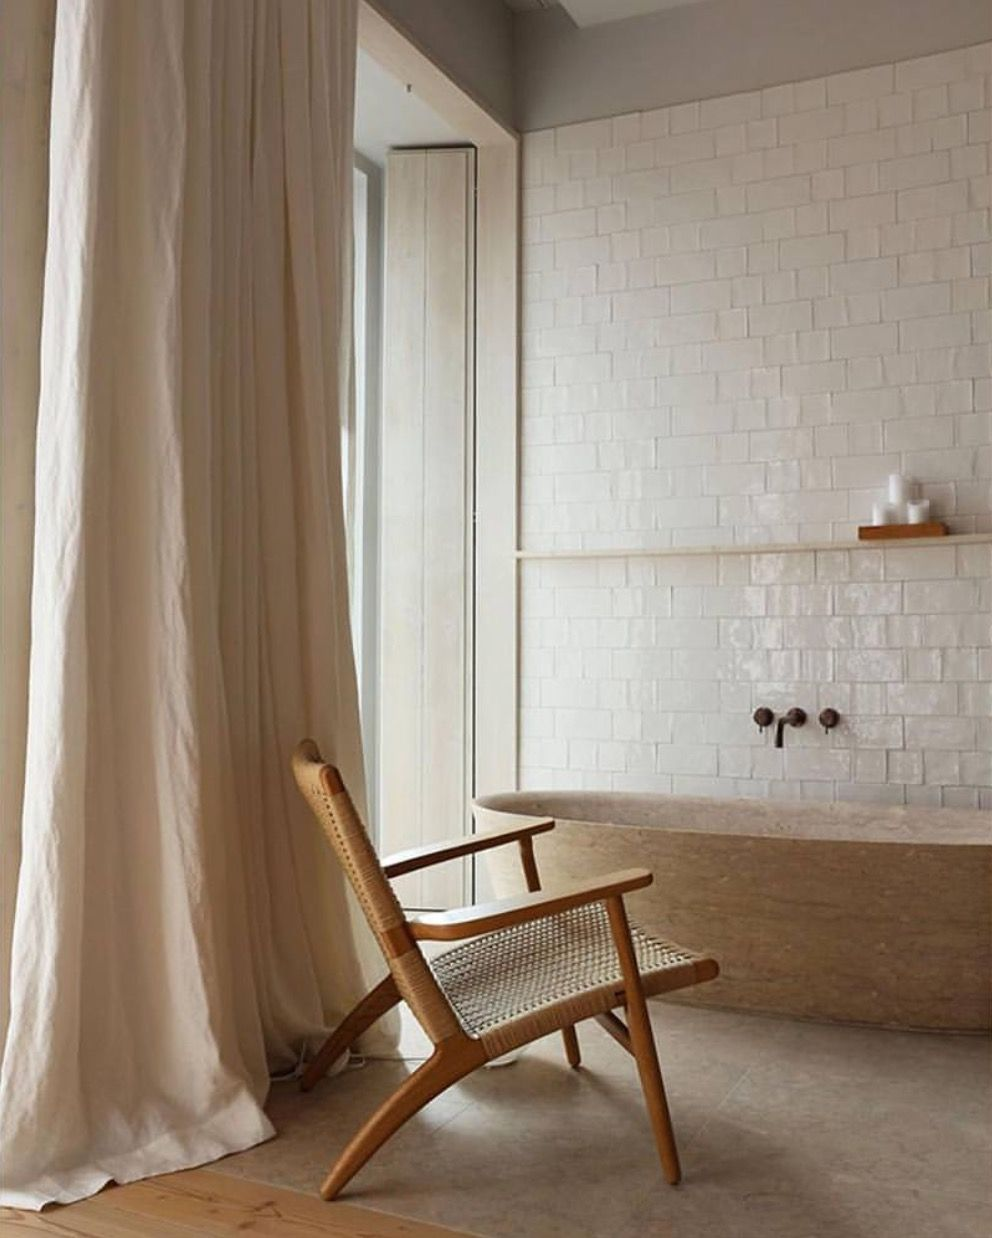 Relaxing space in the bathroom. Complete with arm chair   Home Sweet ...